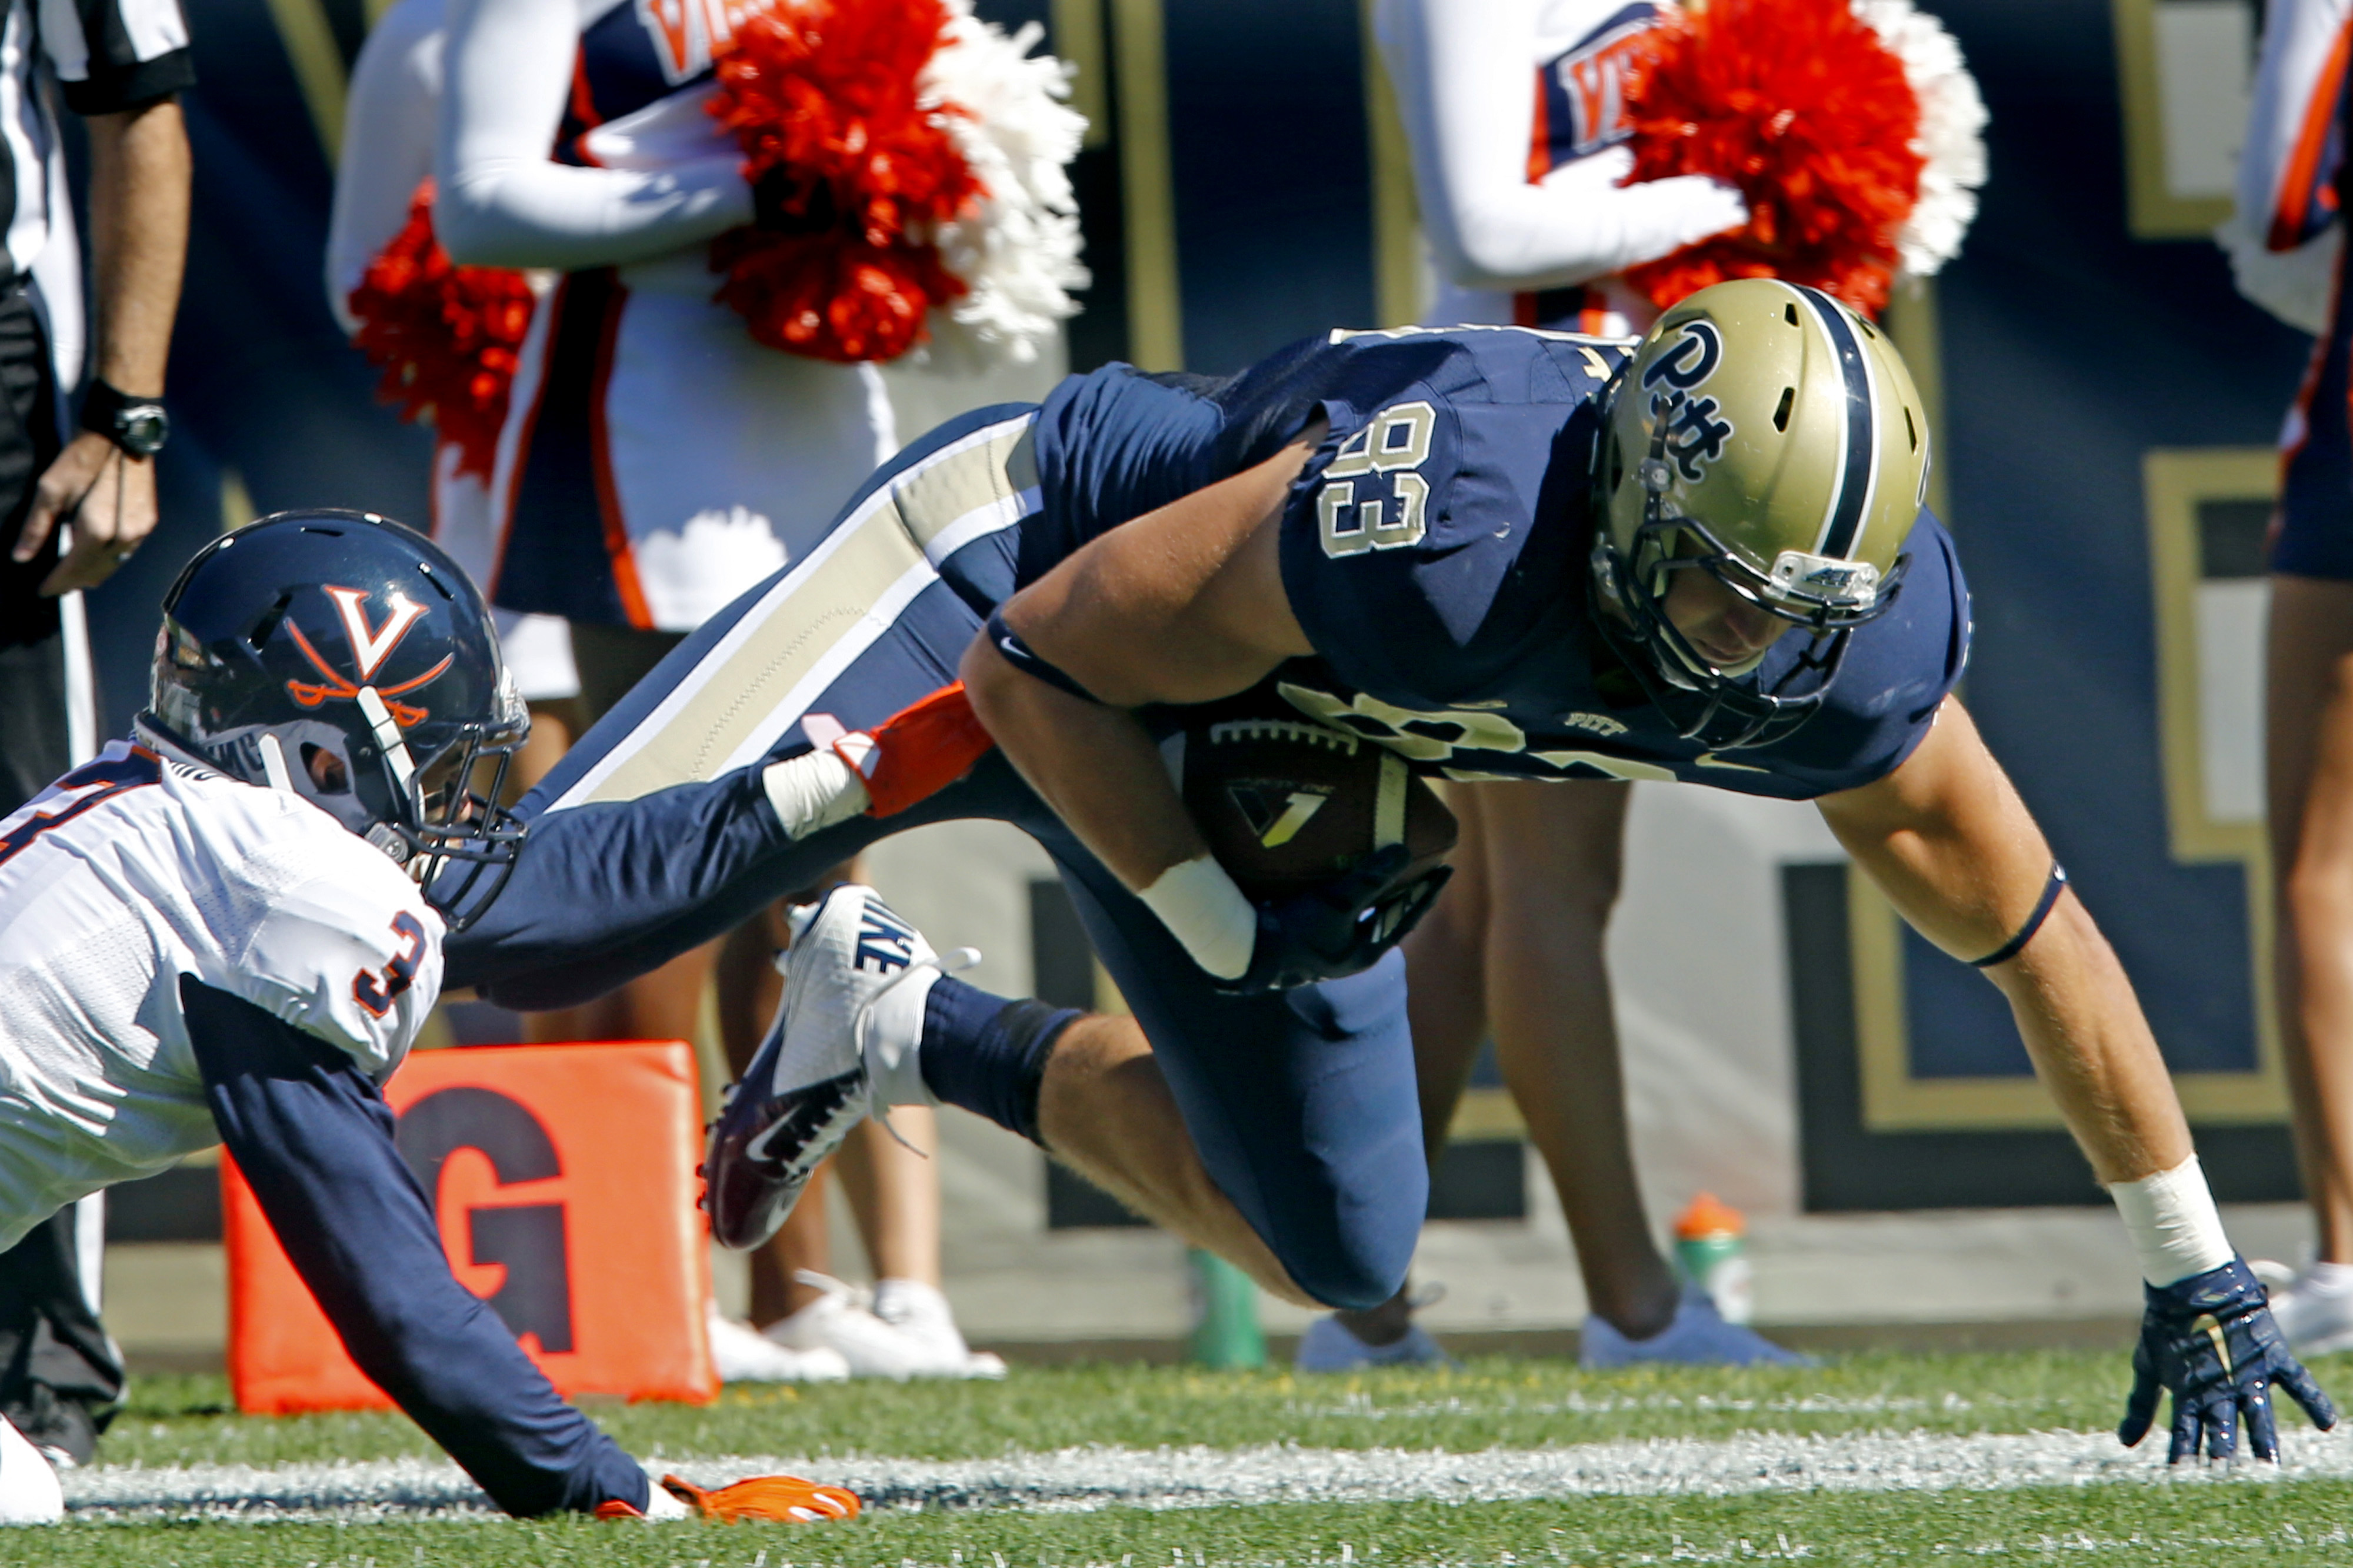 Pittsburgh tight end Scott Orndoff (83) gets away from Virginia safety Quin Blanding (3) after making a catch to score in the first quarter of an NCAA college football game, Saturday, Oct. 10, 2015 in Pittsburgh. (AP Photo/Keith Srakocic)